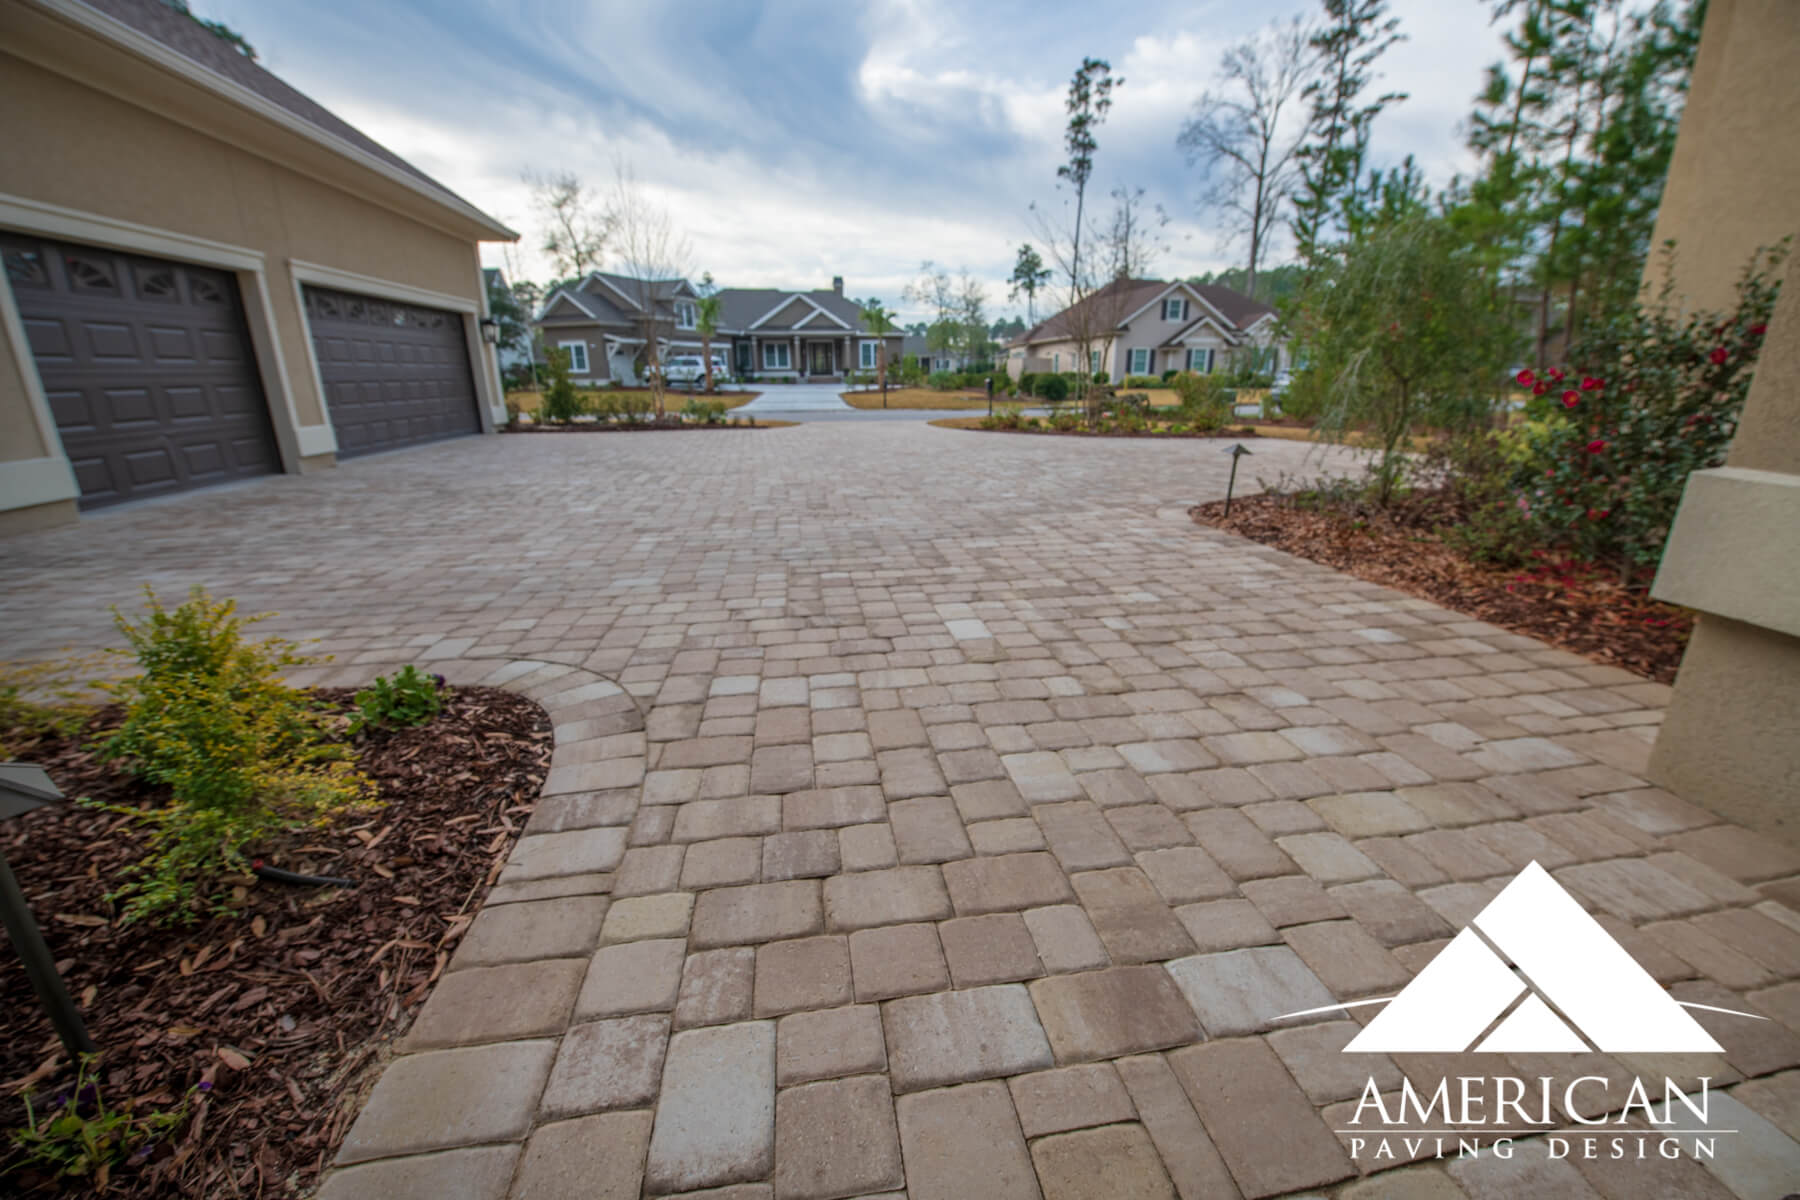 Reduce Repairs and Enhance Curb Appeal - Install A Paver Driveway